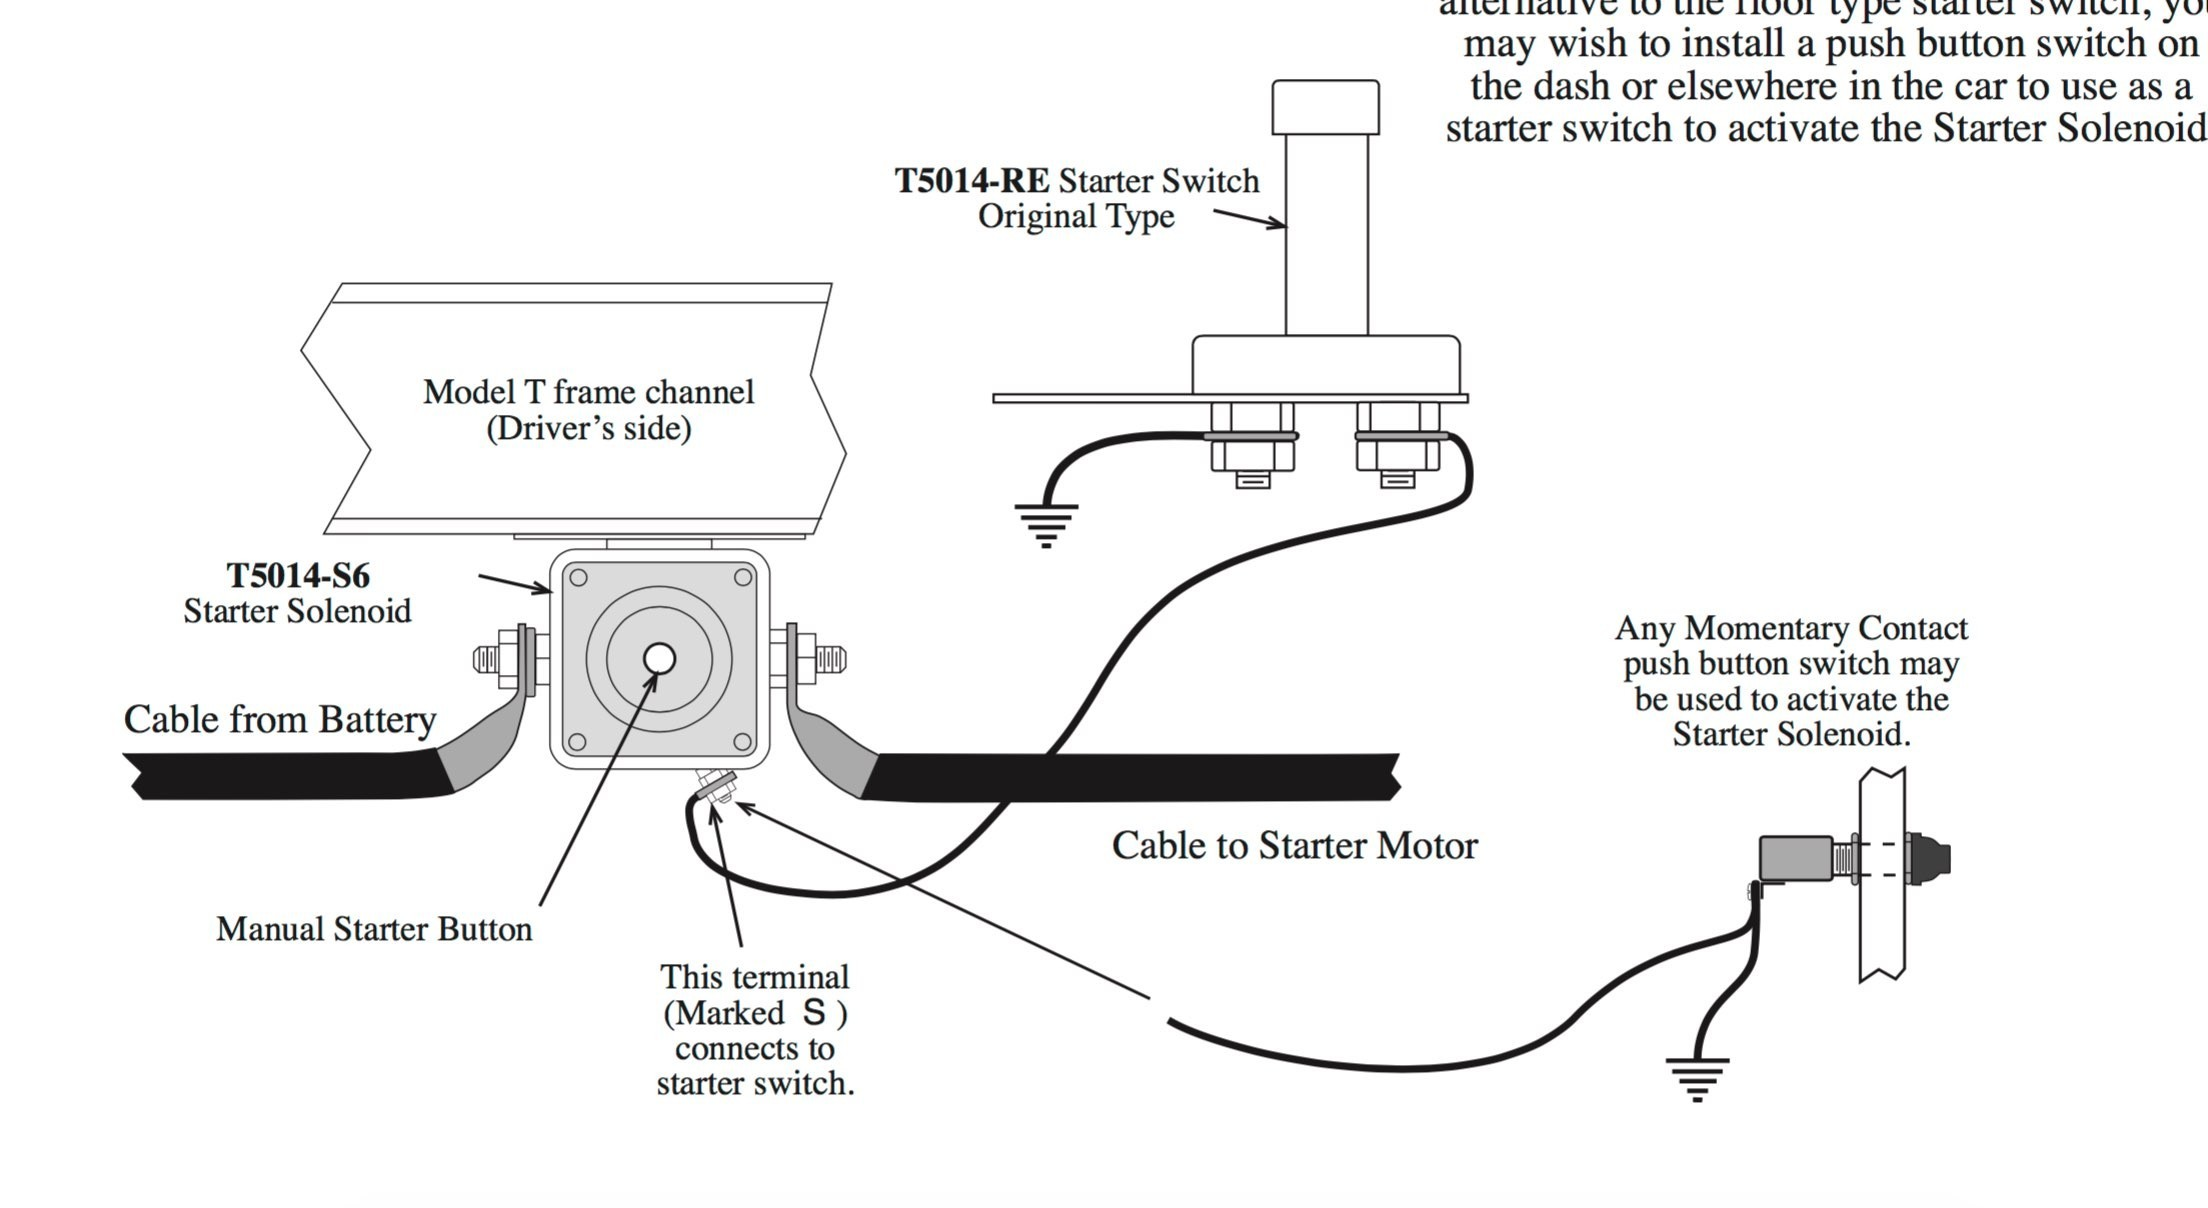 Boat Starter Solenoid Wiring Diagram Guide And Troubleshooting Of 12 Volt Gm Marine Todays Rh 13 7 1813weddingbarn Com